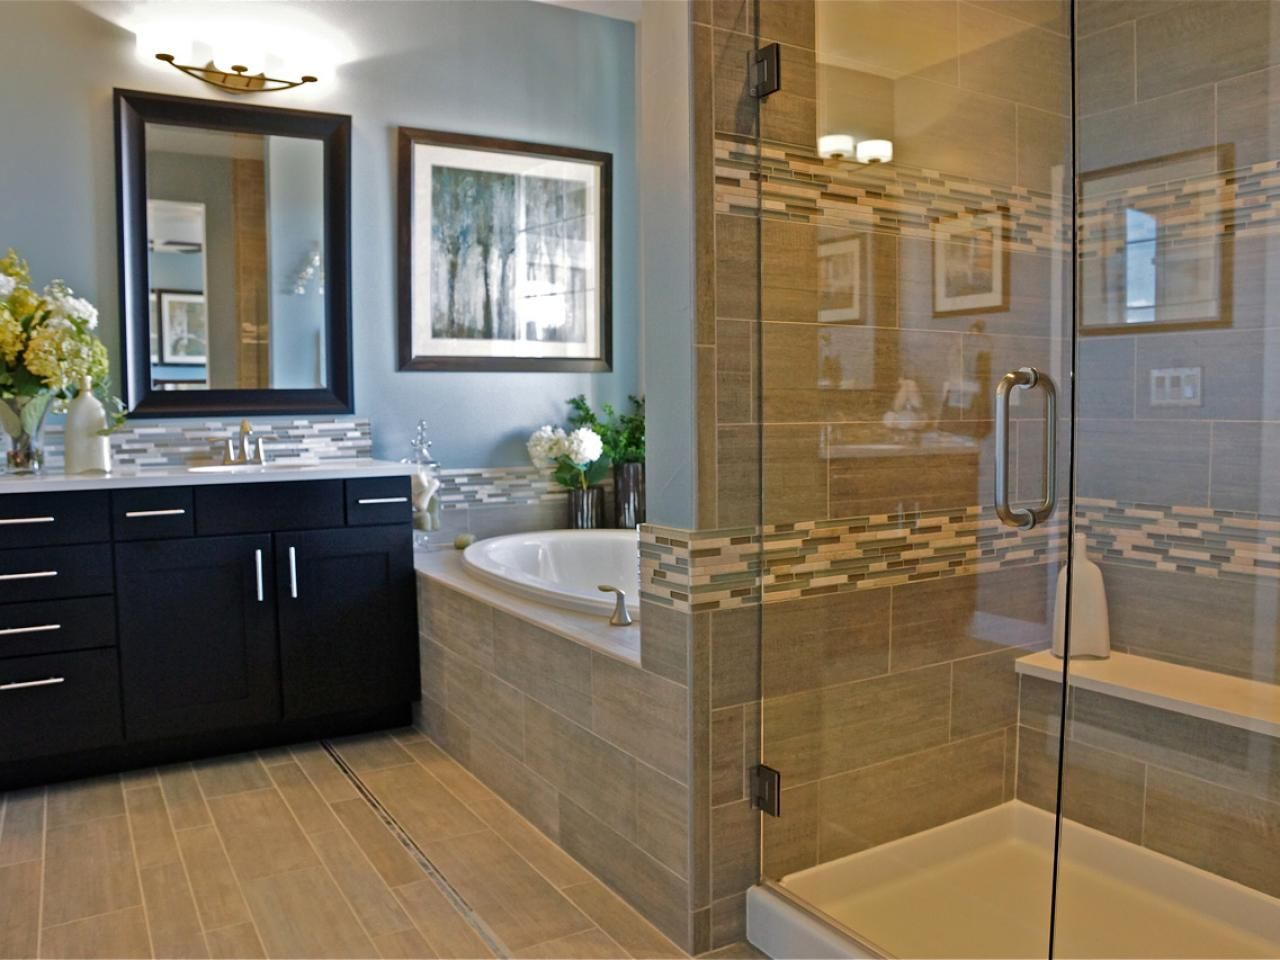 this spa-like bathroom has the feel of a luxury hotel, with a